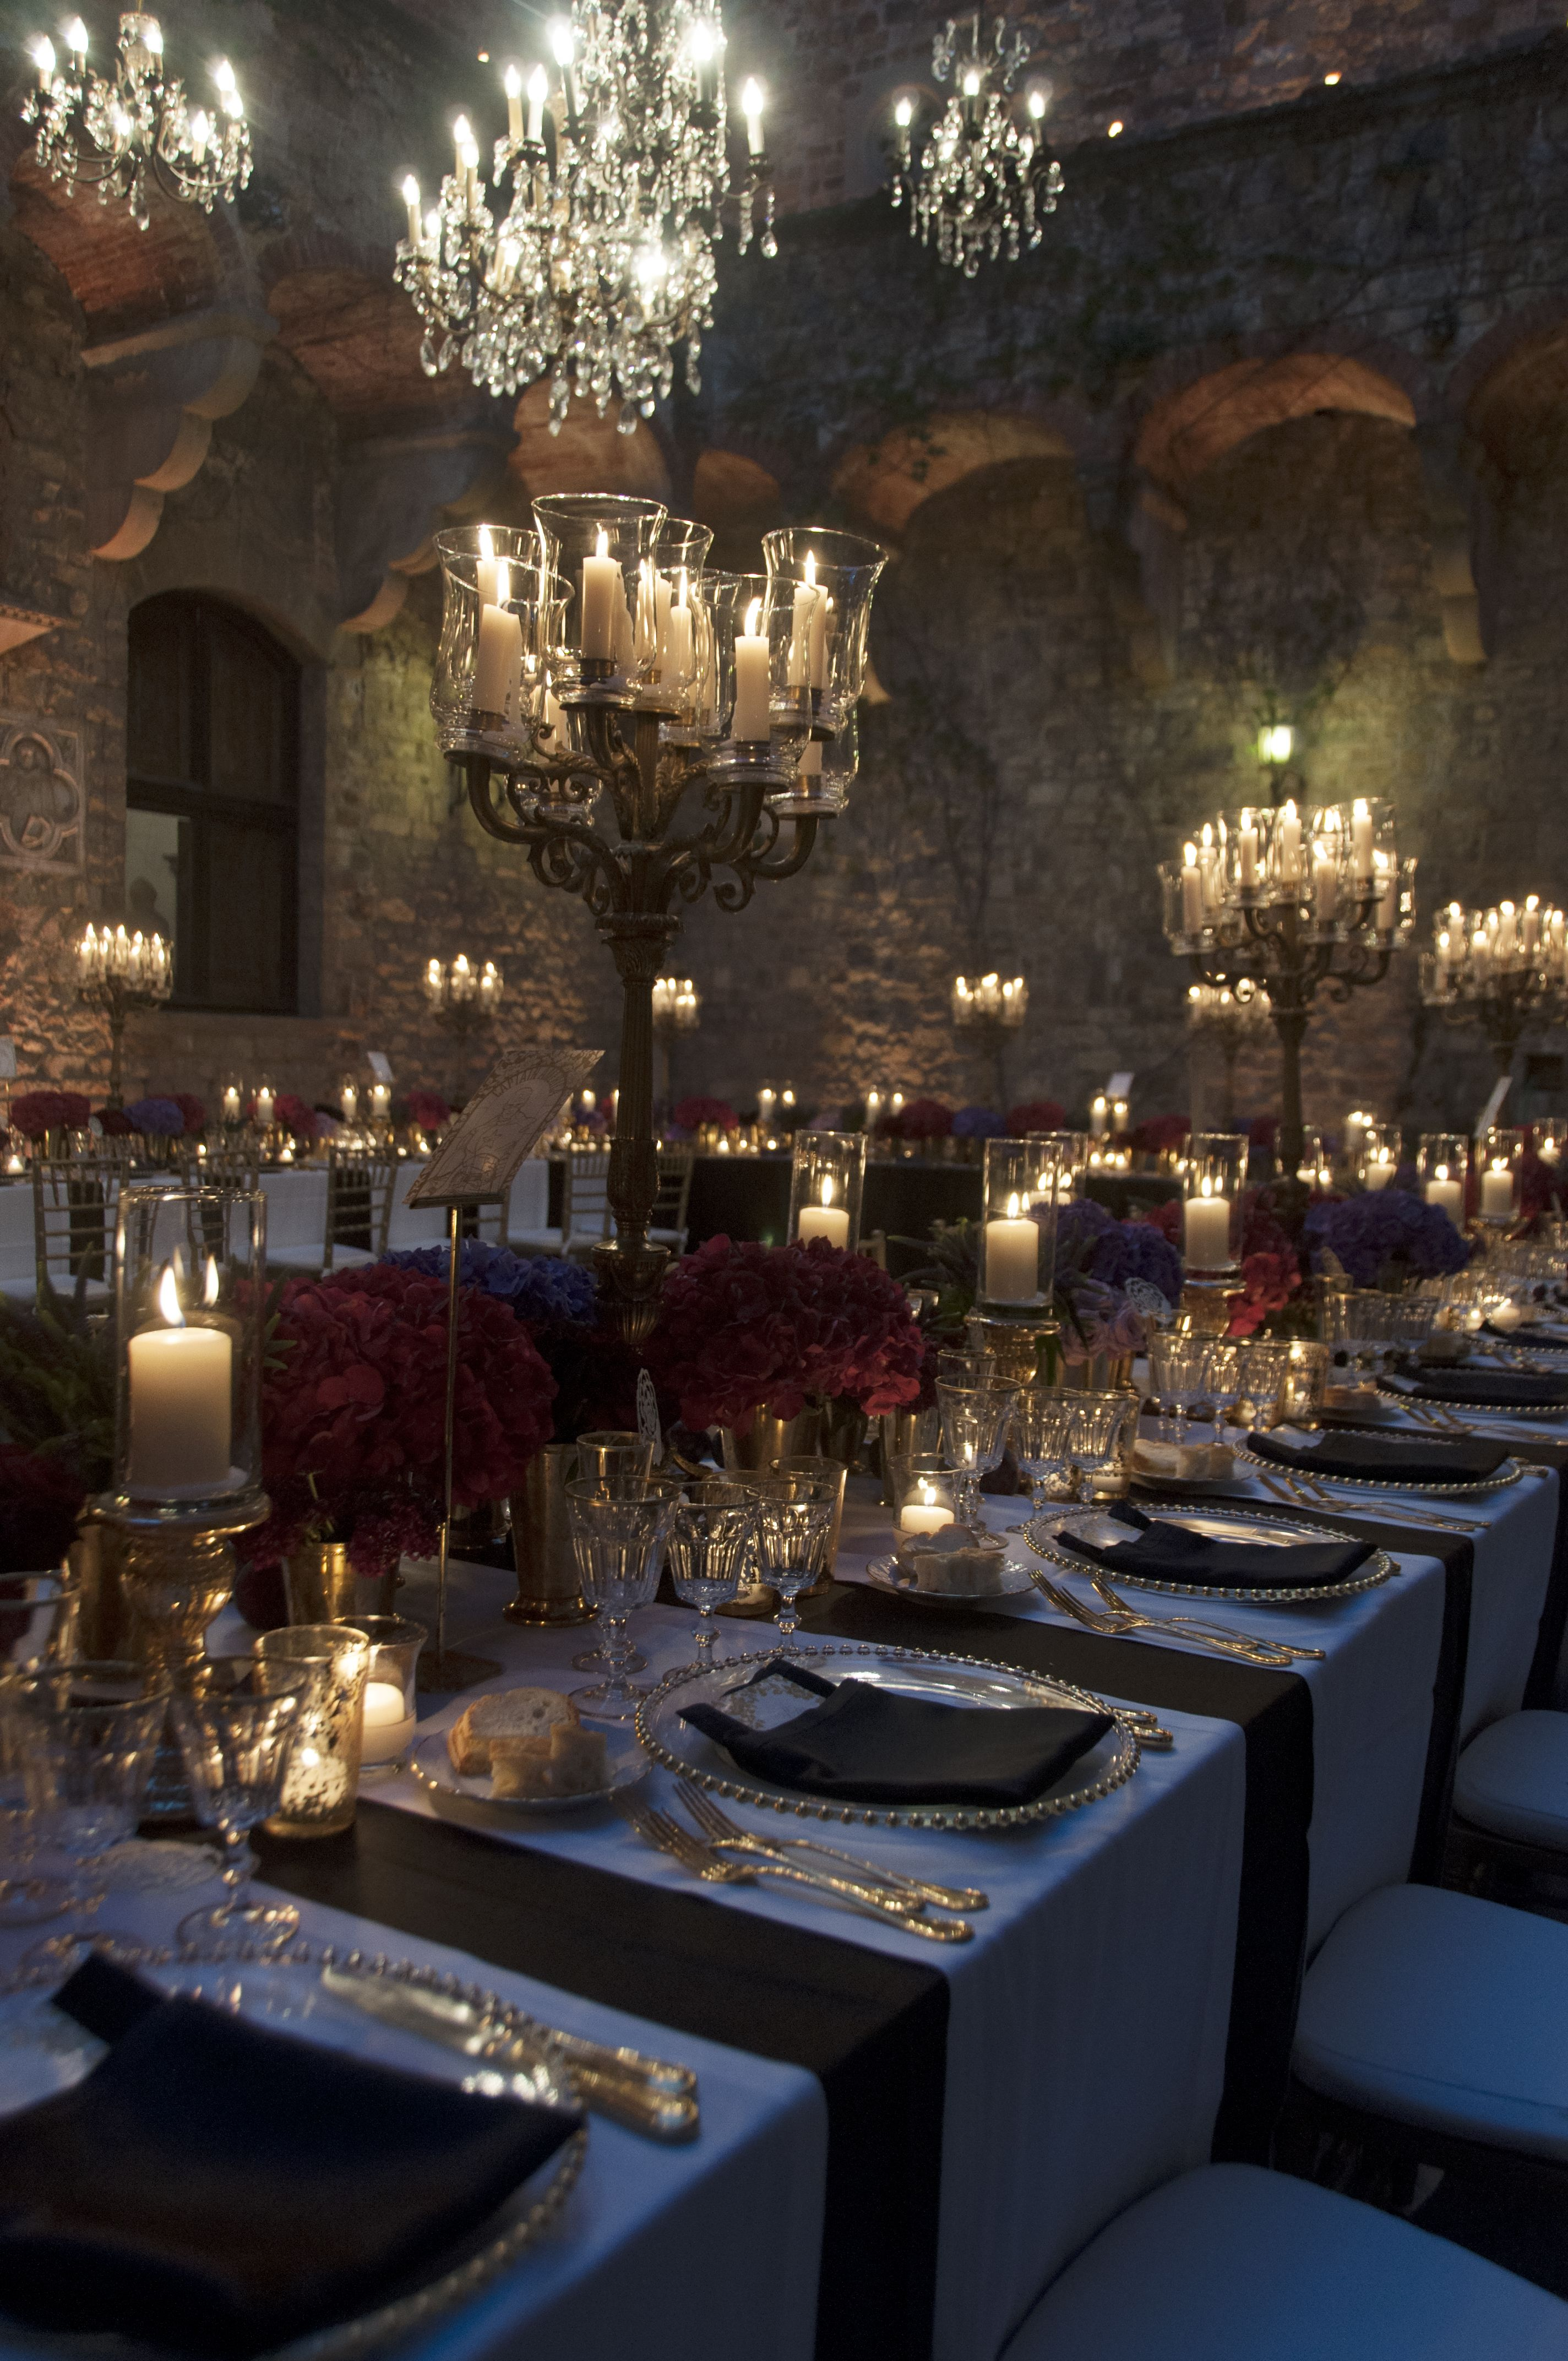 Decoration Anniversaire Romantique Twilight In The Tuscan Hills At Castello Di Vincigliata